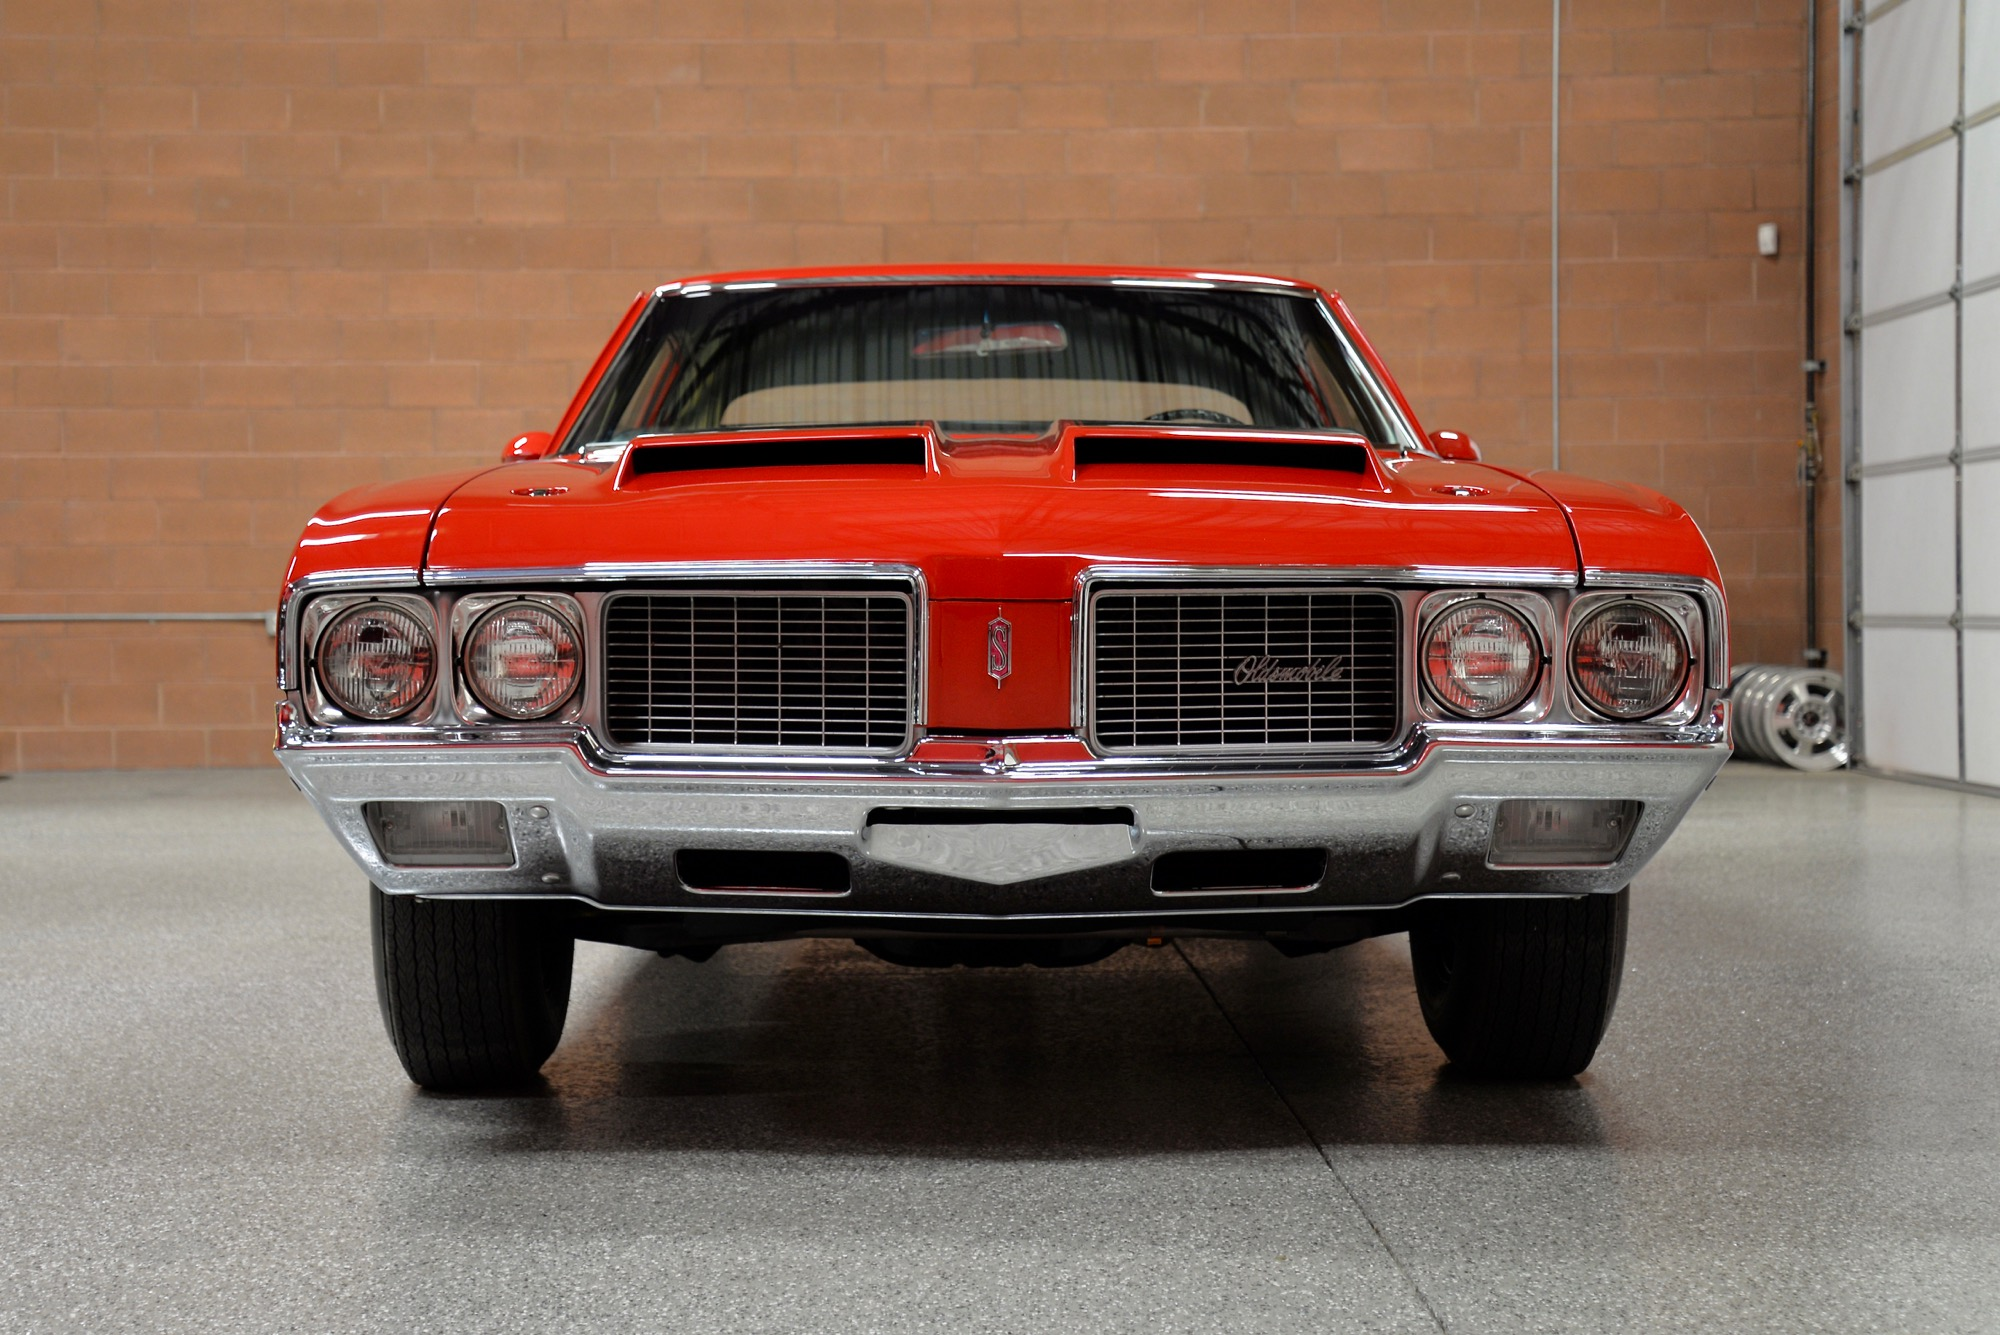 1970 Oldsmobile W31 Cutlass S Sports Coupe | Red Hills Rods